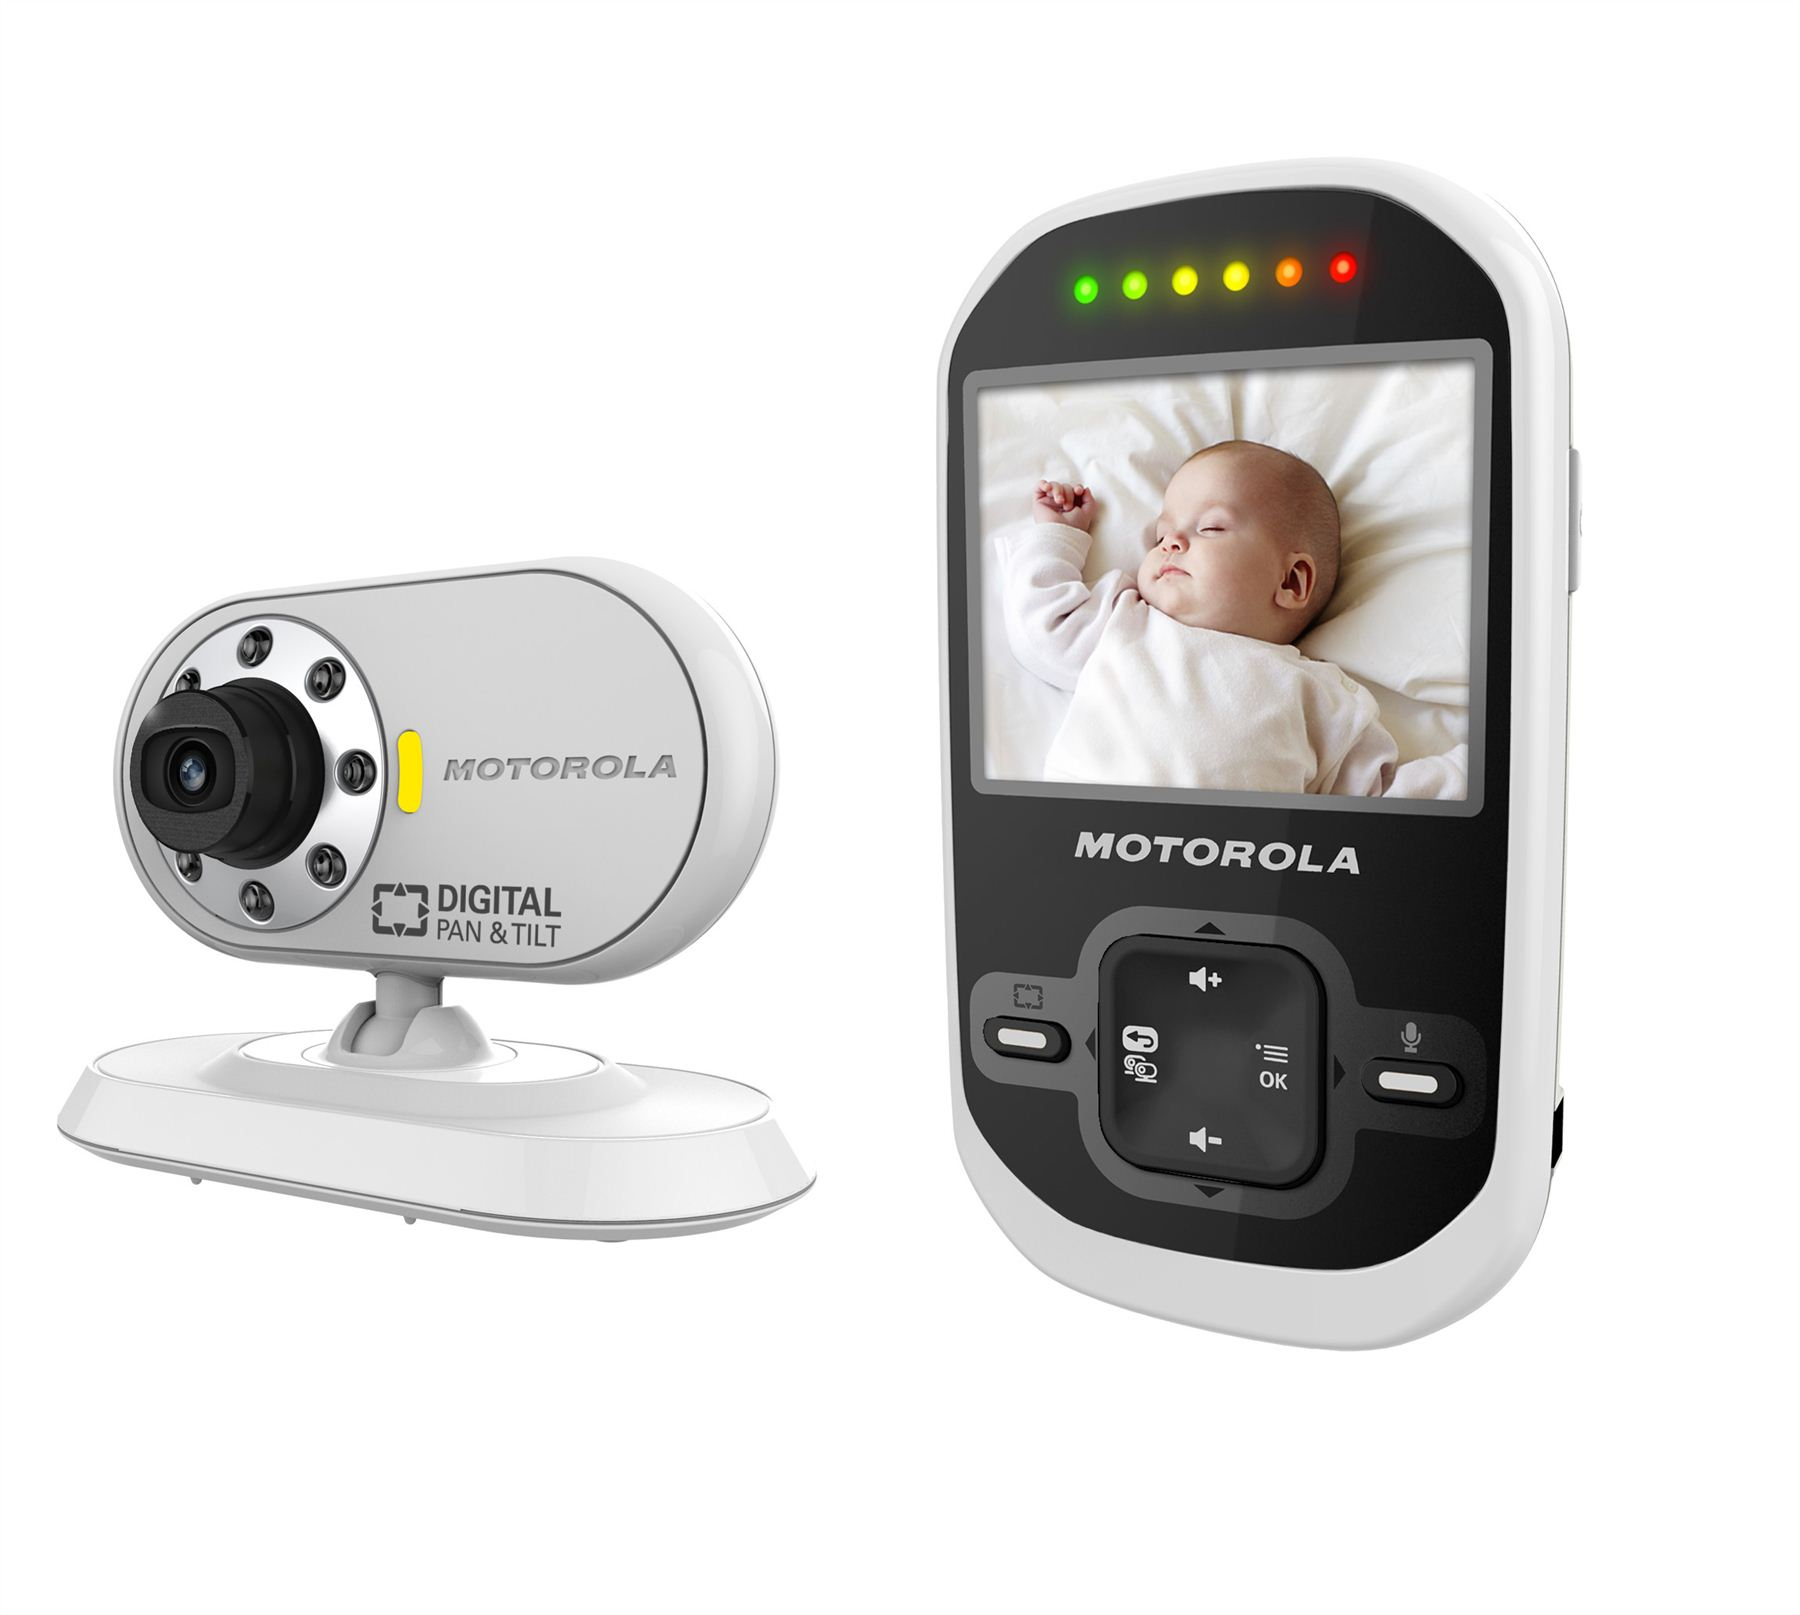 motorola mbp26 digital video camera baby monitor set with 2 4 colour lc. Black Bedroom Furniture Sets. Home Design Ideas